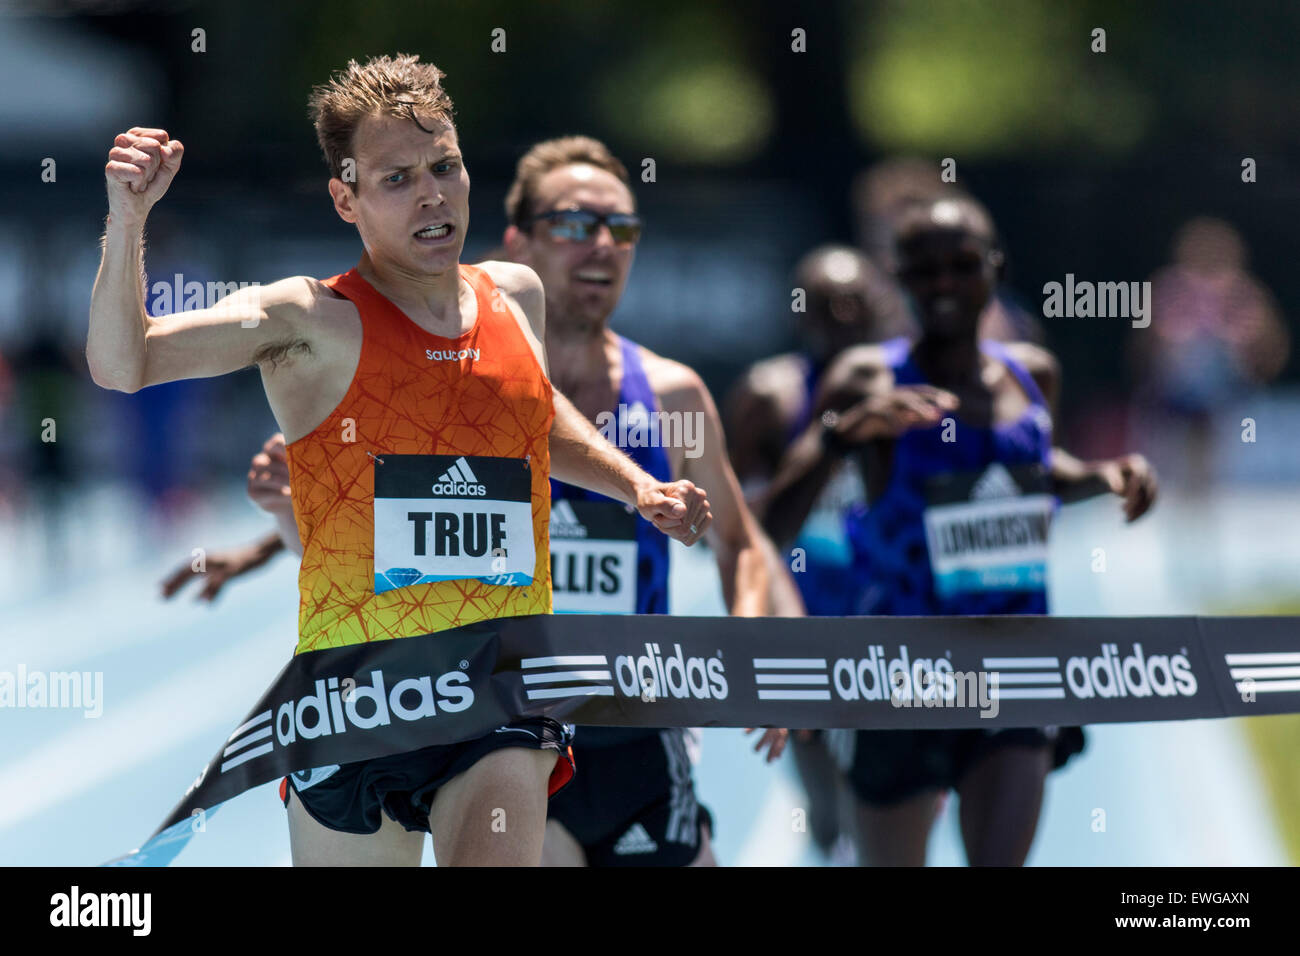 Ben True (USA) defeats Nick Willis (NZL) in the Men's 5000m at the 2015 Adidas NYC Diamond League Grand Prix - Stock Image